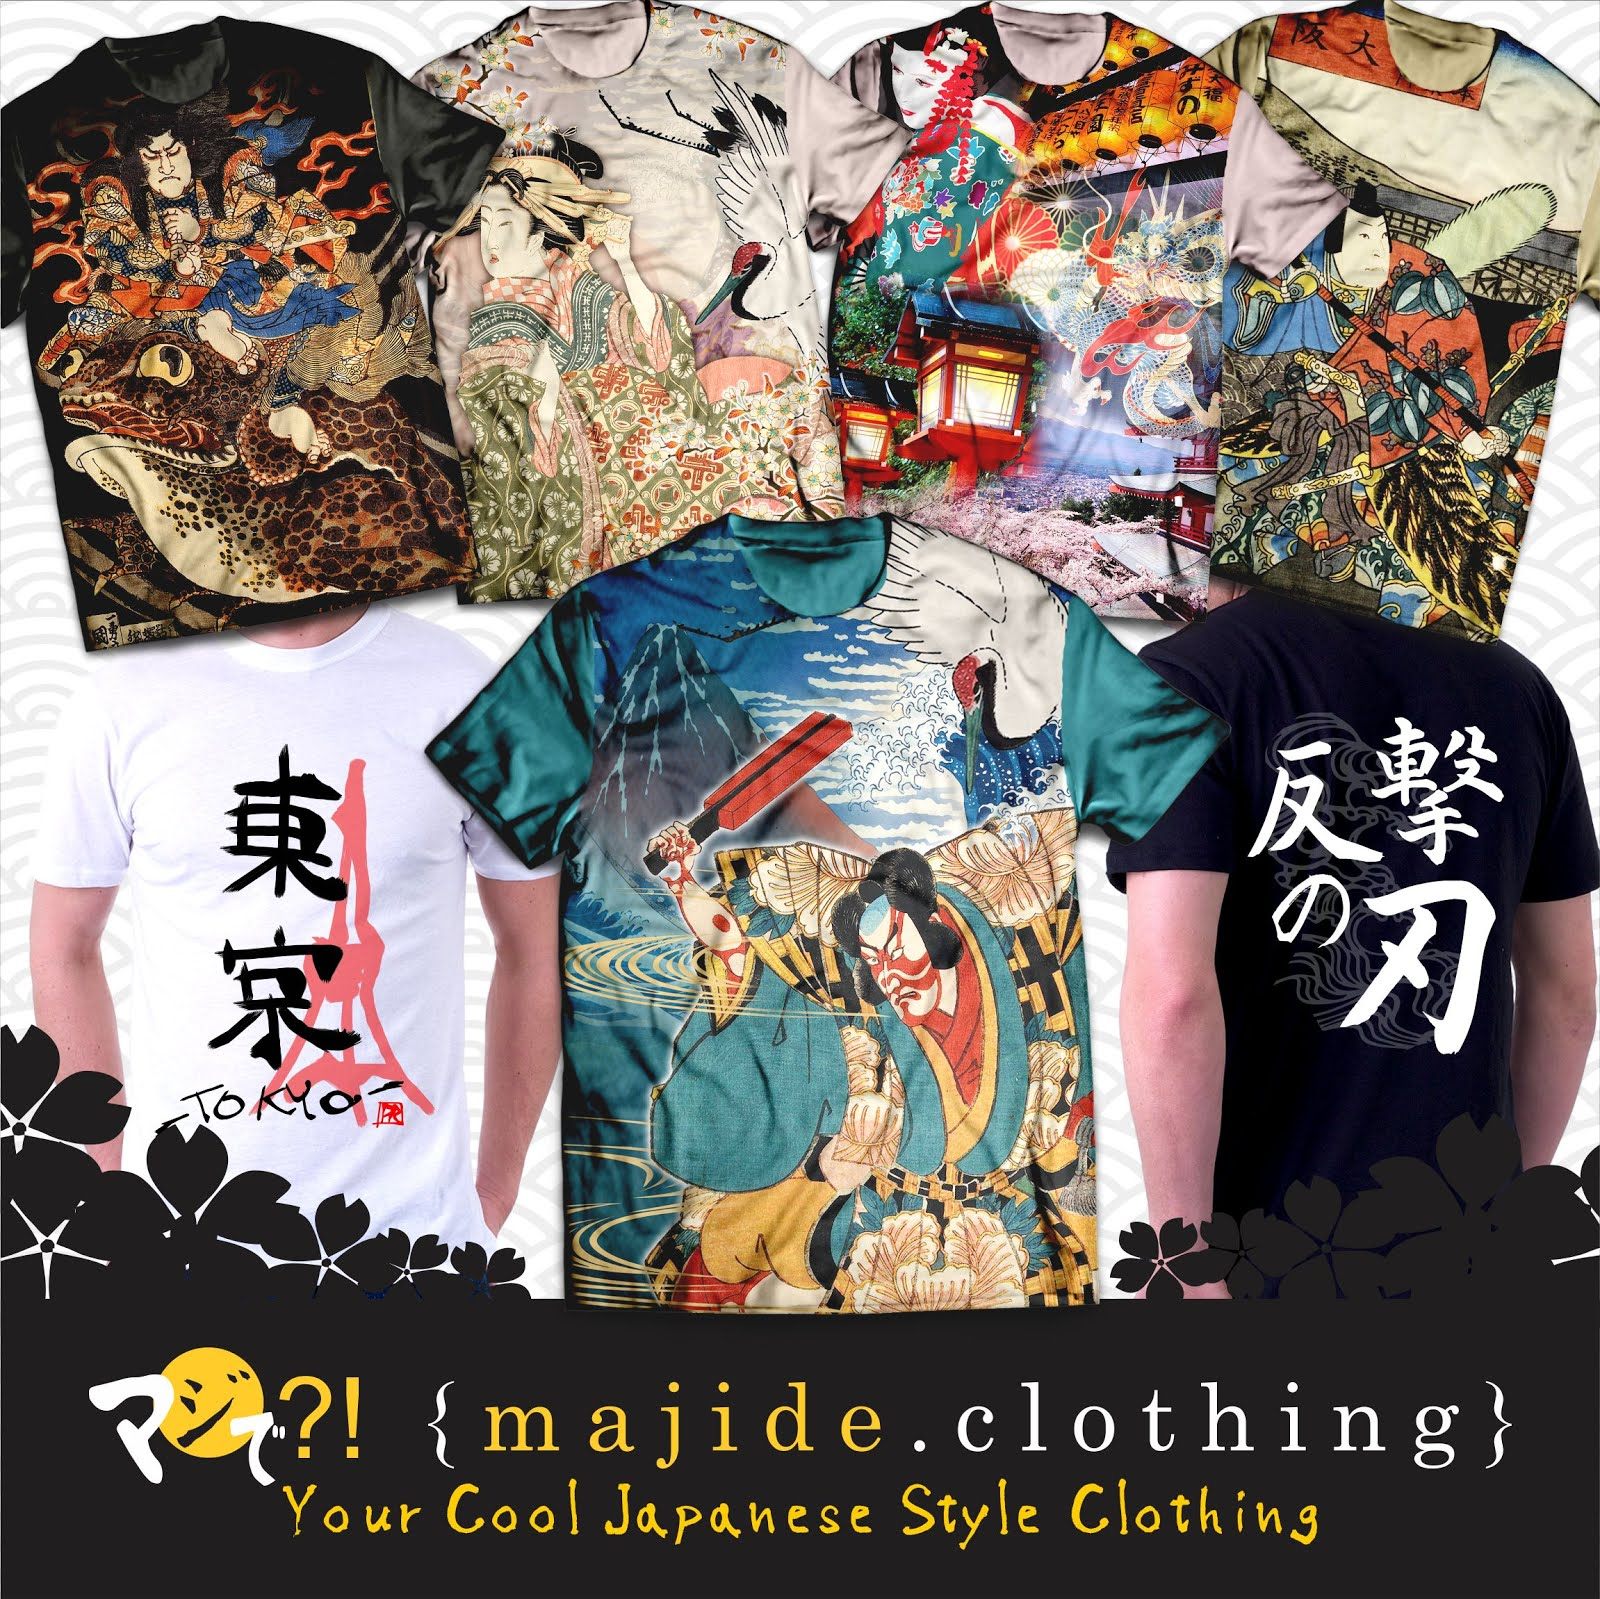 MAJIDE CLOTHING